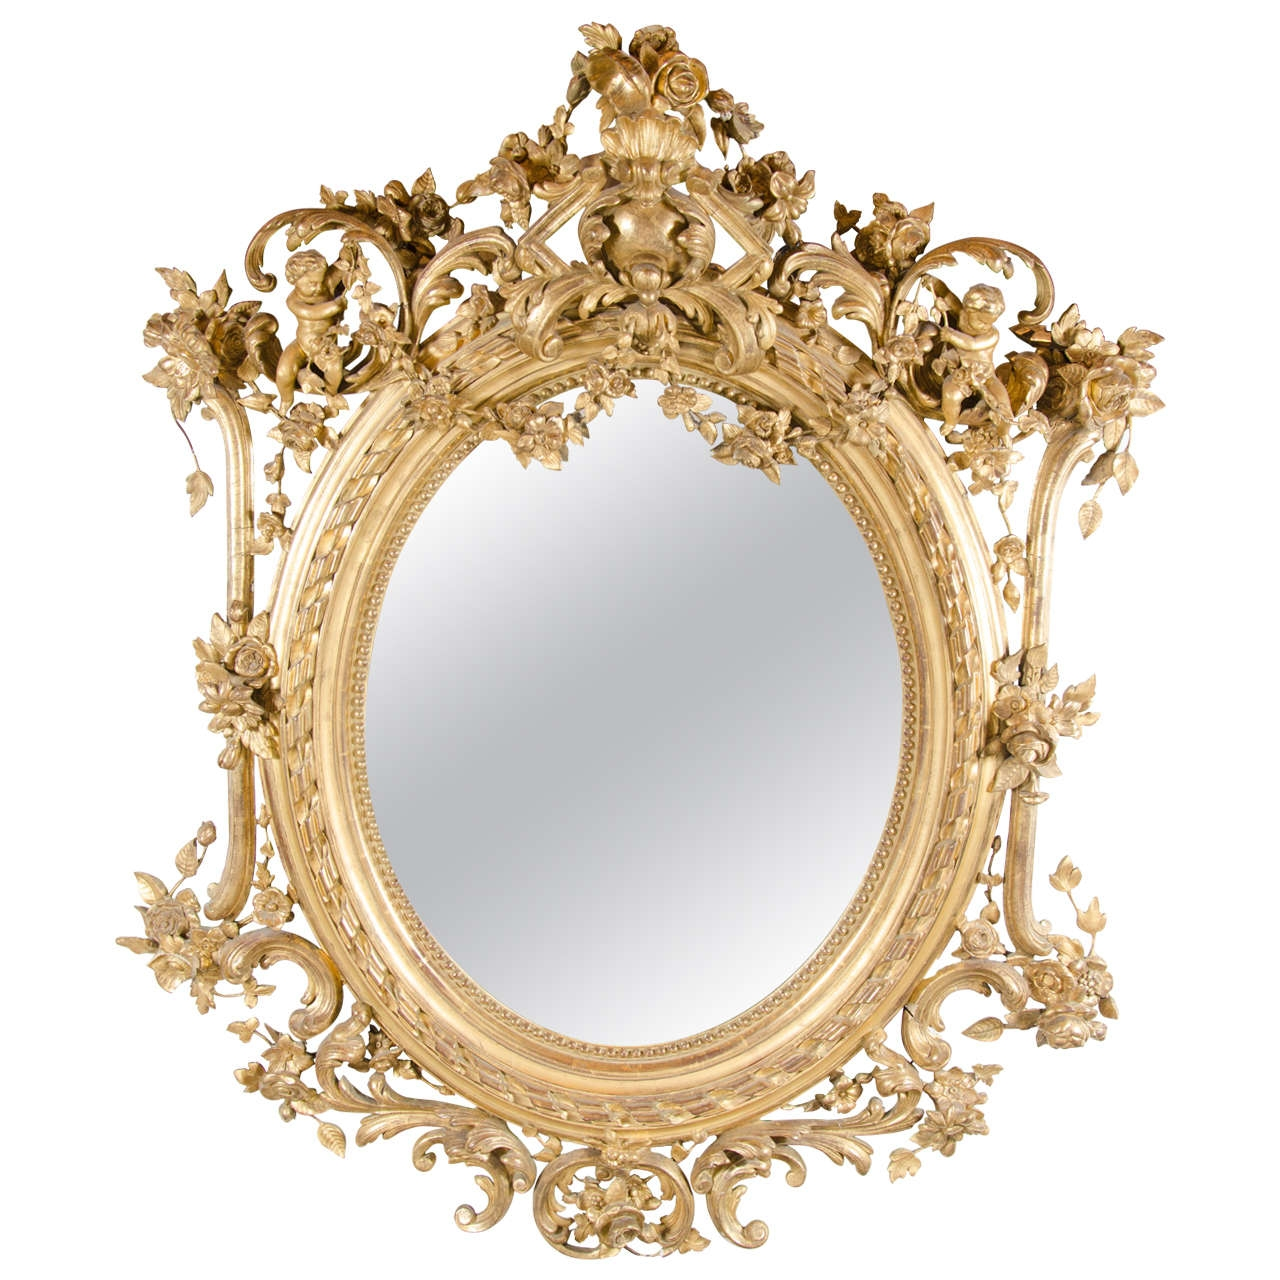 Extraordinary 19th Century French Carved Gilt Cherub Rococo Pertaining To Antique Gold Mirror French (View 9 of 15)